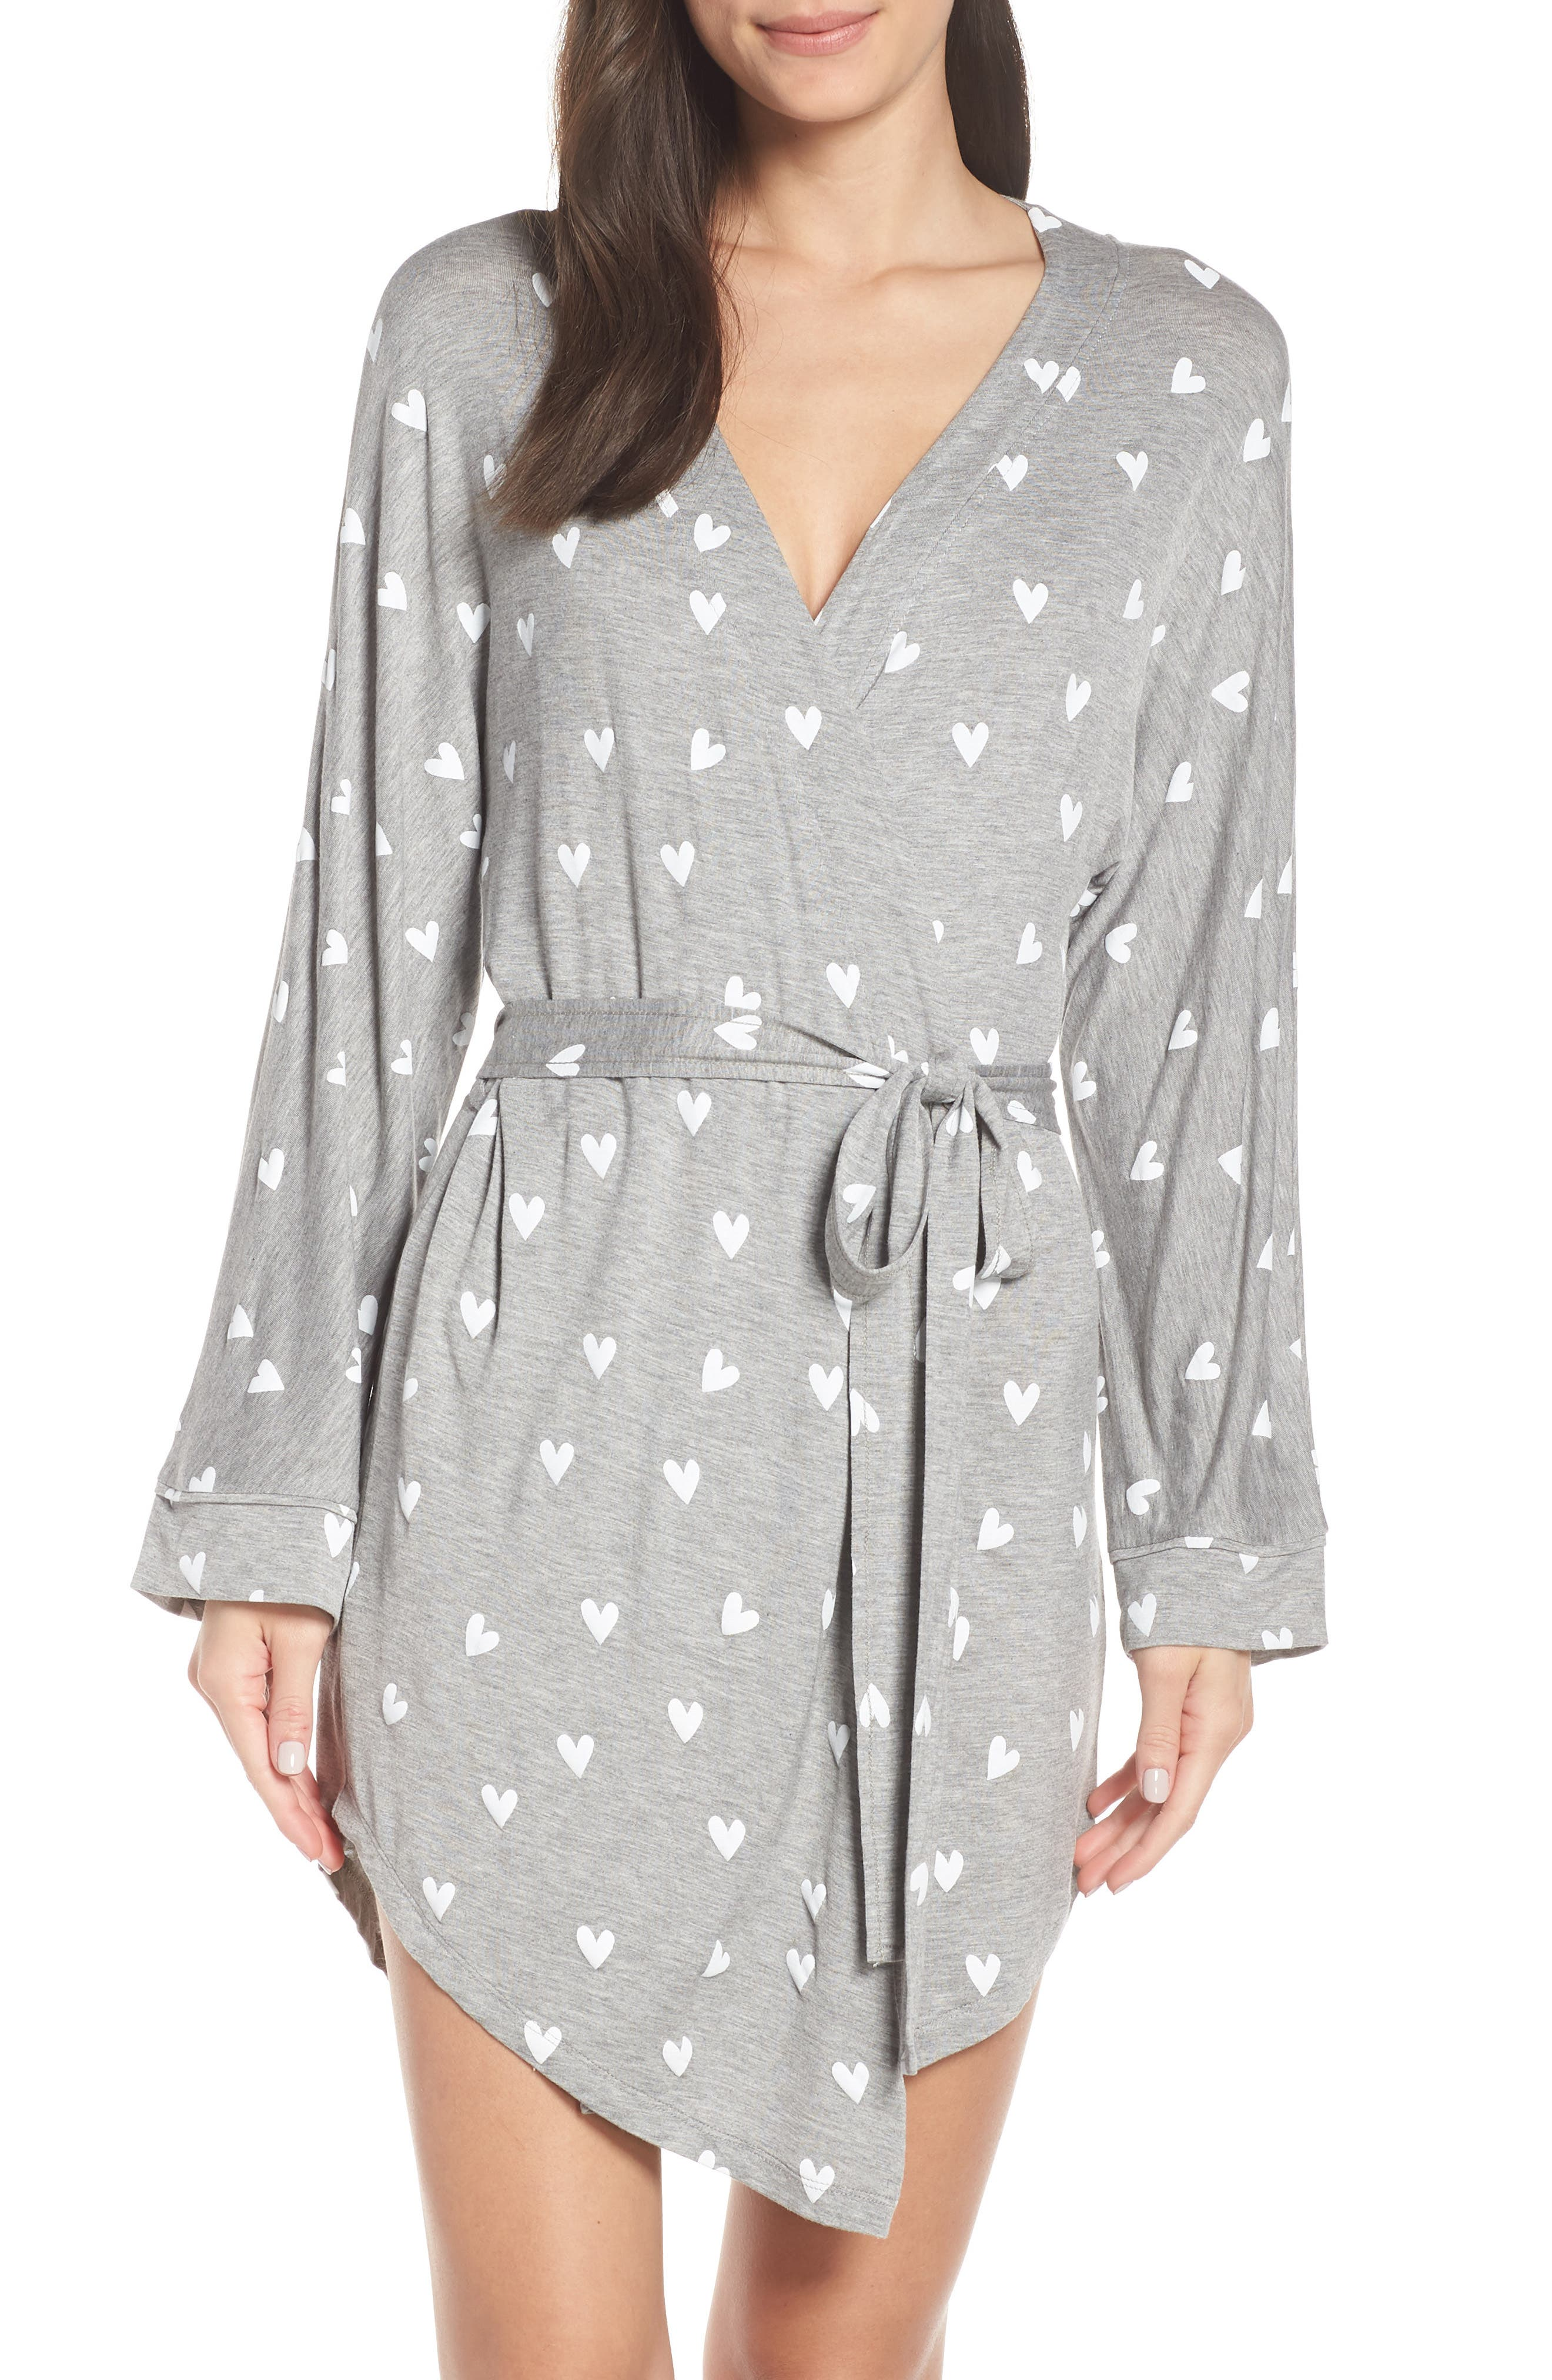 HONEYDEW INTIMATES All American Jersey Robe in Heather Grey Hearts